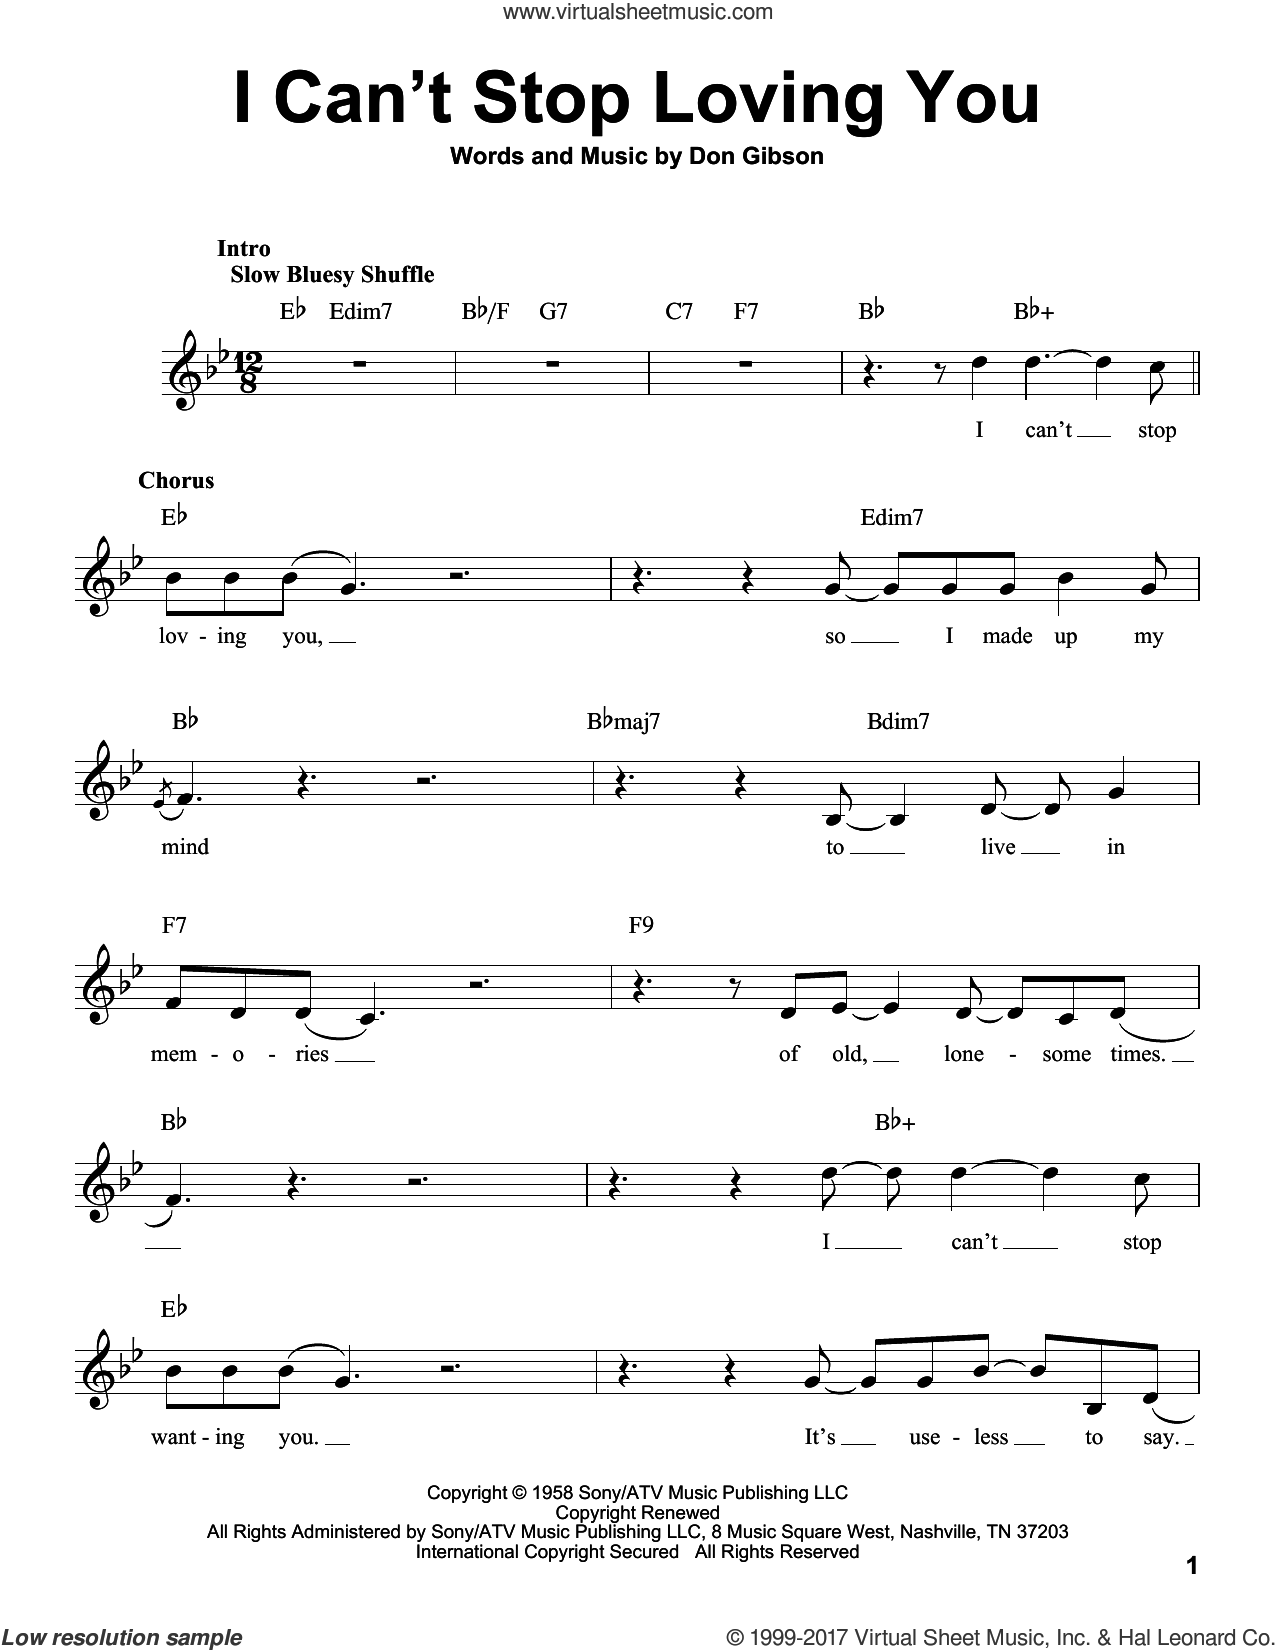 I Can't Stop Loving You sheet music for voice solo by Don Gibson, Conway Twitty, Elvis Presley, Kitty Wells and Ray Charles, intermediate skill level